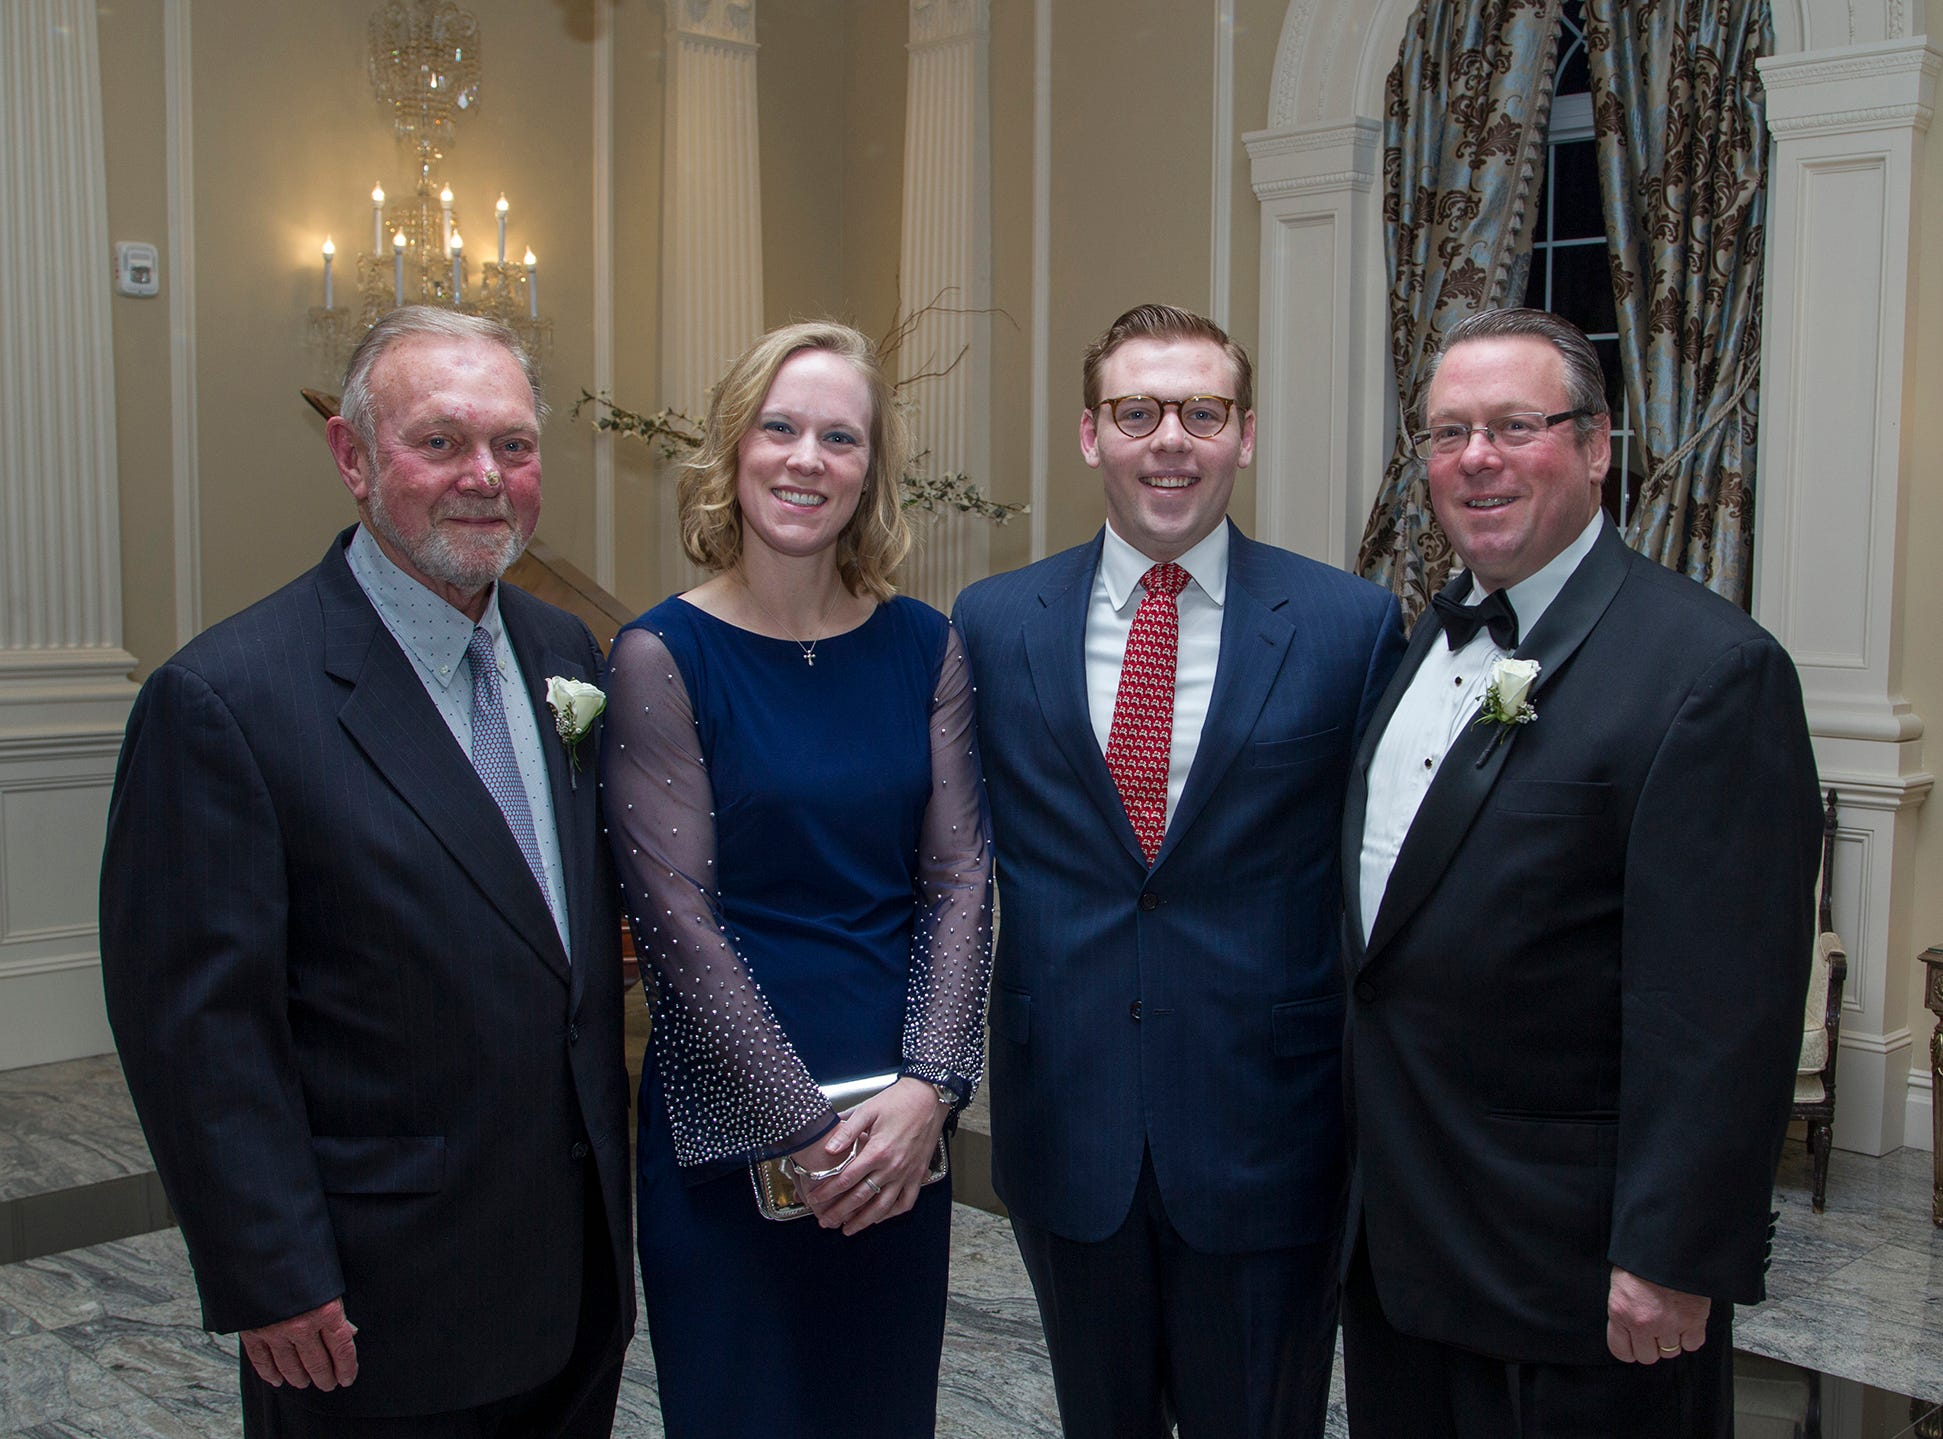 Shotmeyer family. Ramapo College held its 37th Annual Distinguished Citizens Dinner at Rockleigh Country Club. 03/02/2019